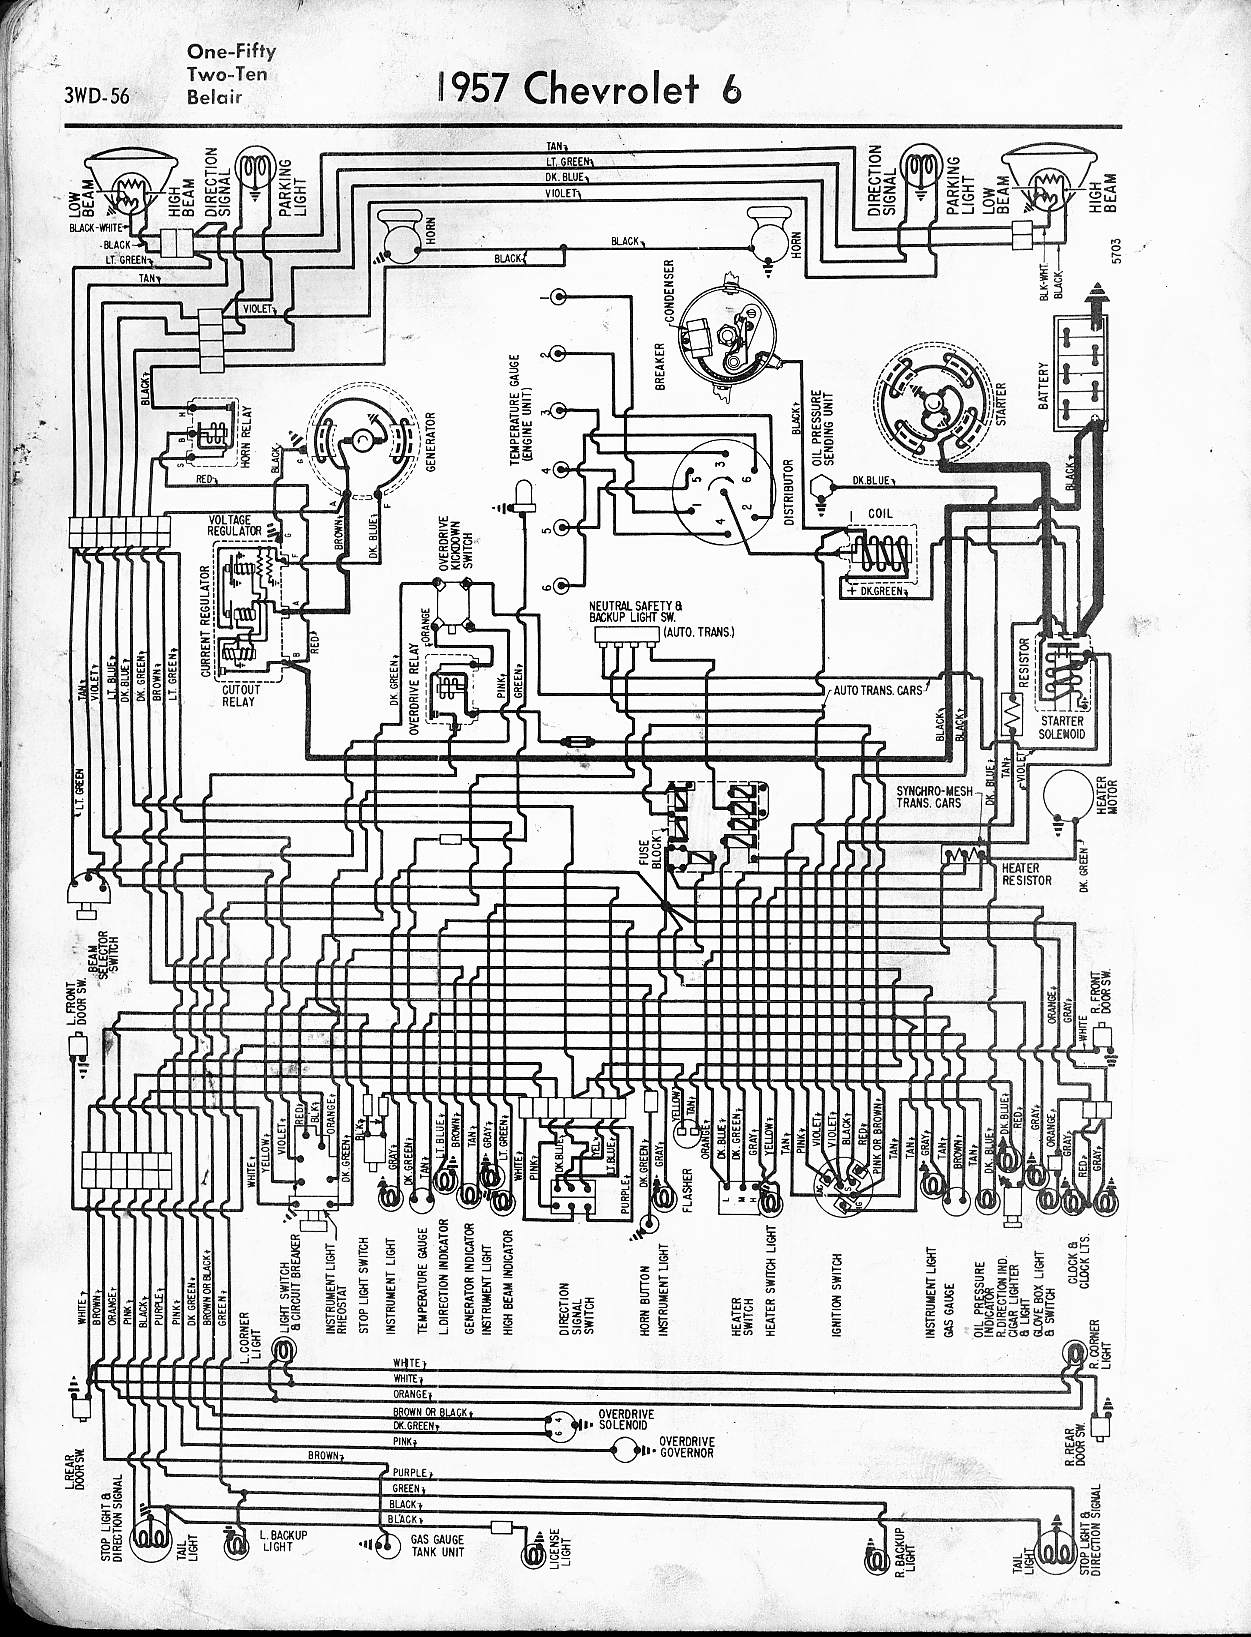 MWireChev57_3WD 056 57 65 chevy wiring diagrams 1966 c10 wiring diagram at virtualis.co